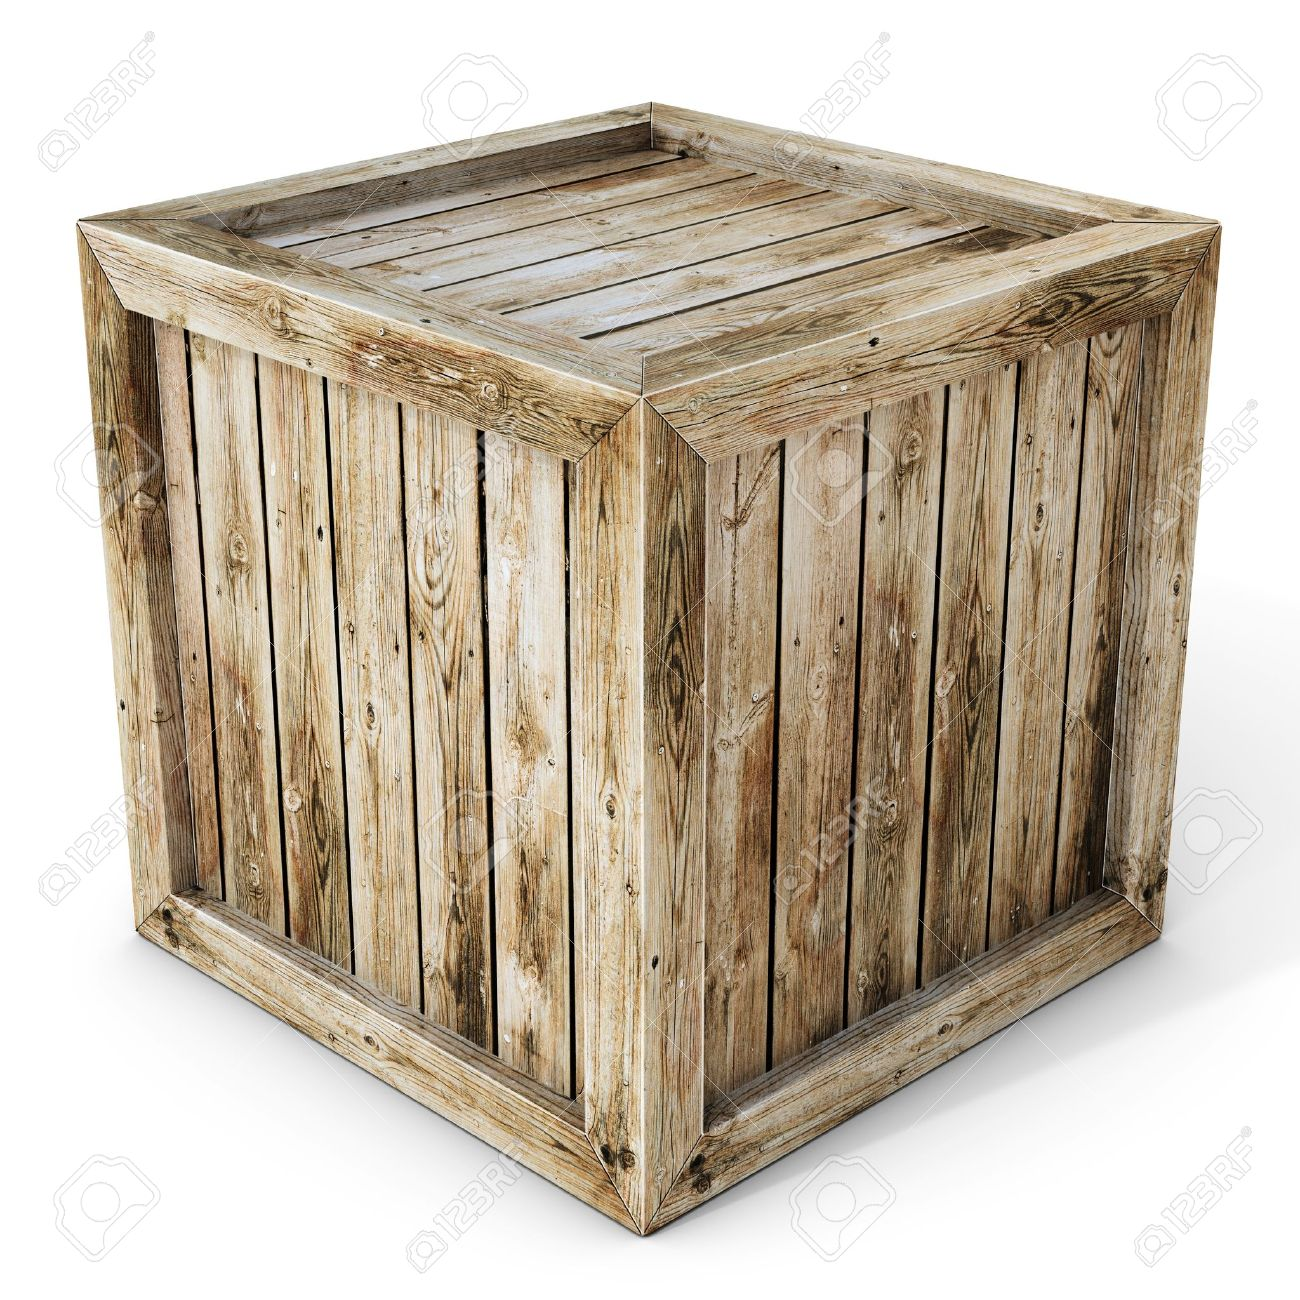 3d Old Wooden Crate On White Background Stock Photo   50232830